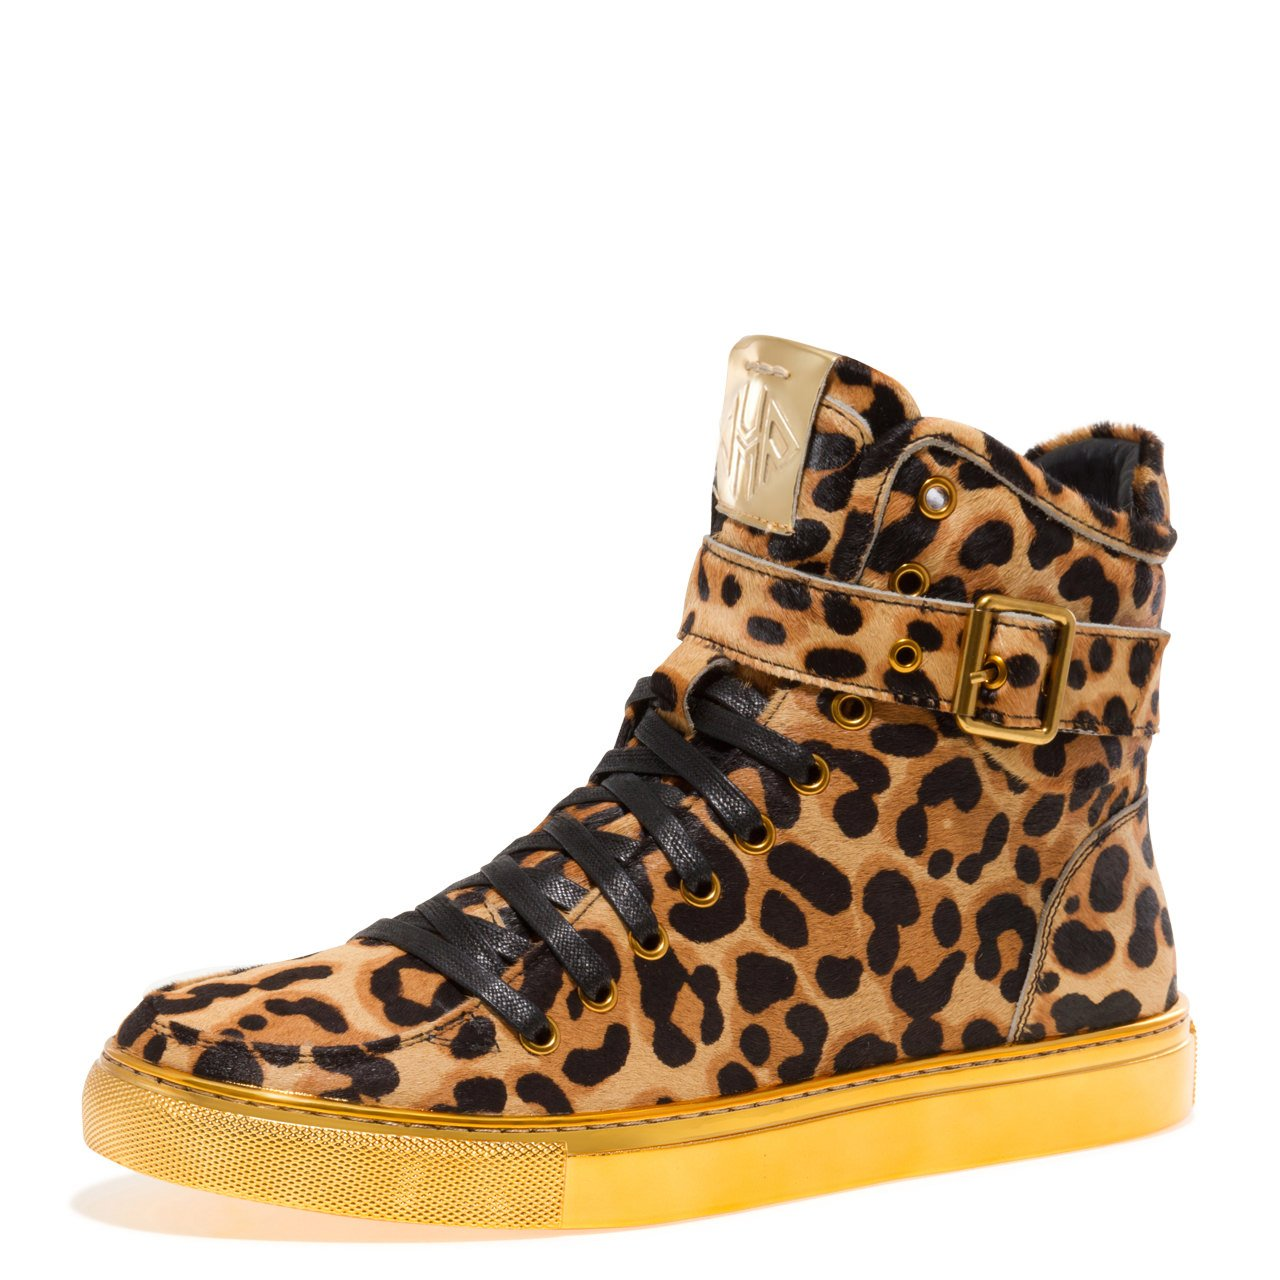 - JUMP NEWYORK Men's Sullivan High Top Sneaker Tan Cheetah Print 10 D US Men